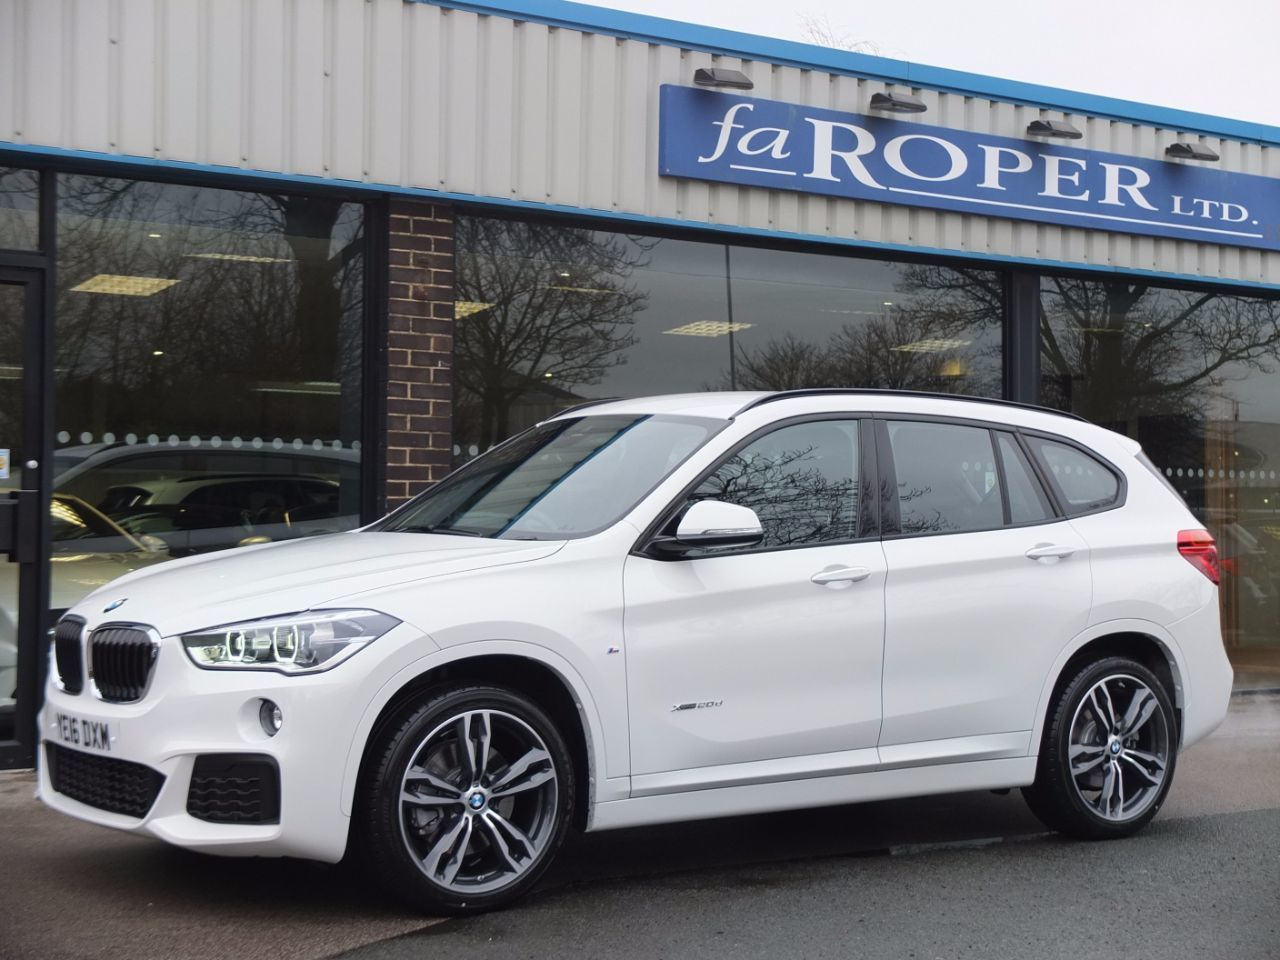 used bmw x1 xdrive 20d m sport auto for sale in bradford west yorkshire fa roper ltd. Black Bedroom Furniture Sets. Home Design Ideas